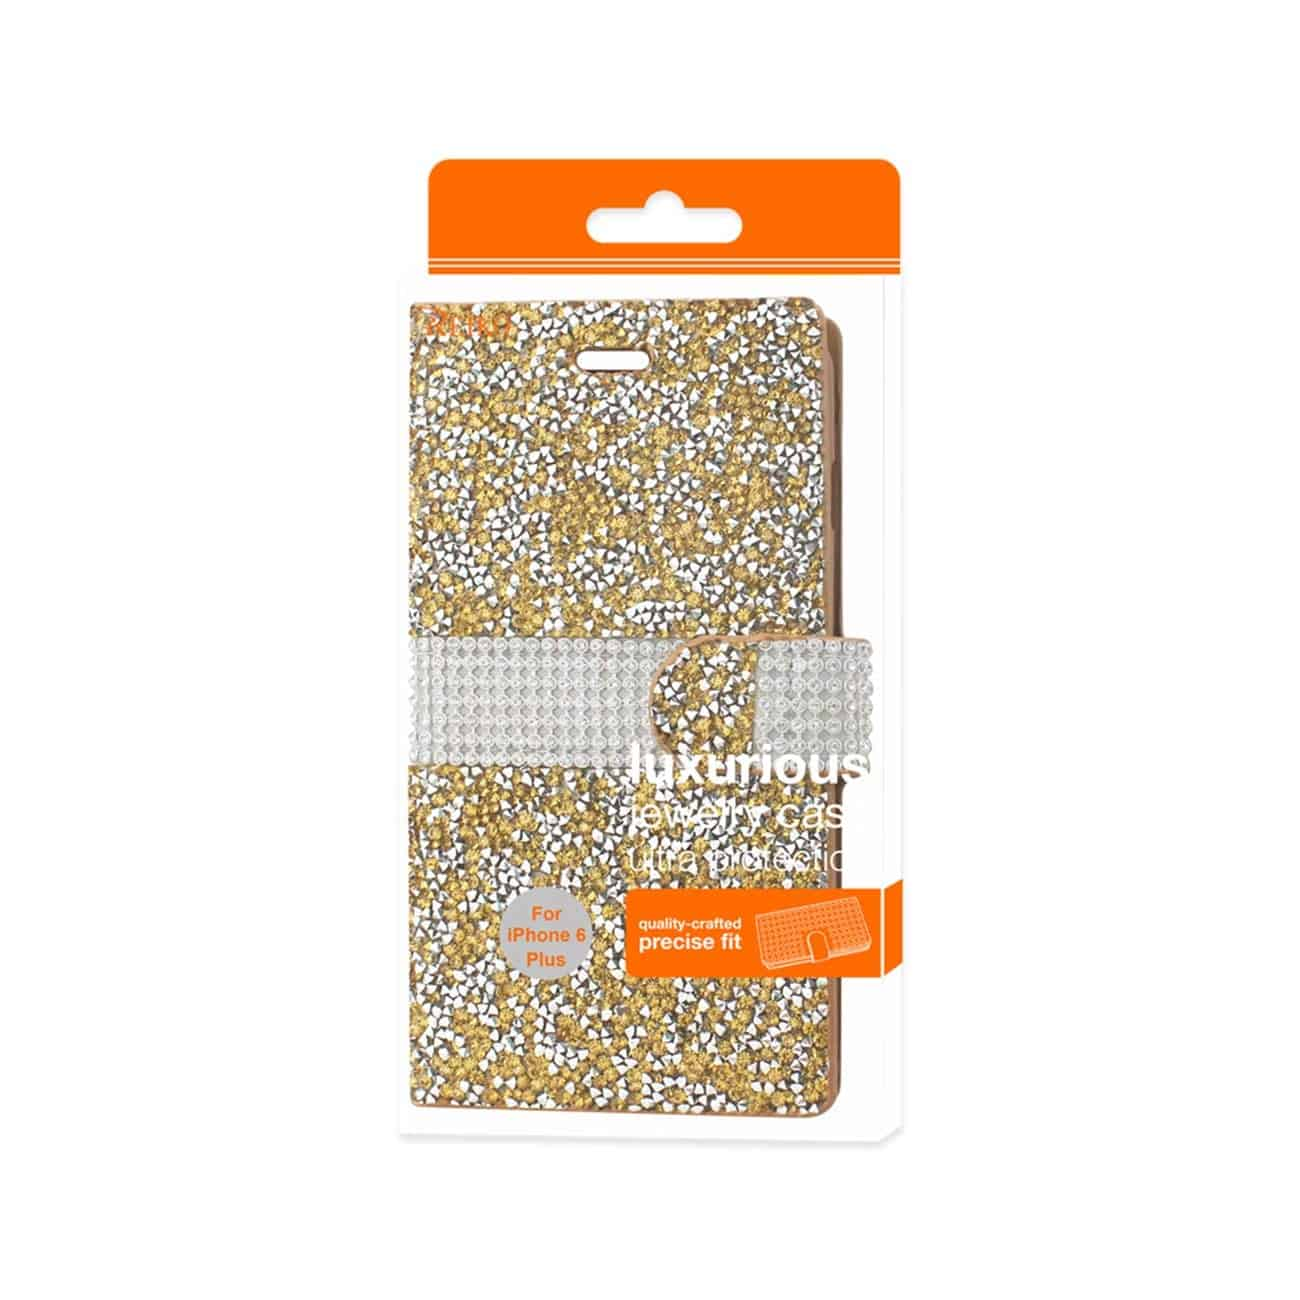 IPHONE 6 PLUS DIAMOND RHINESTONE WALLET CASE IN GOLD